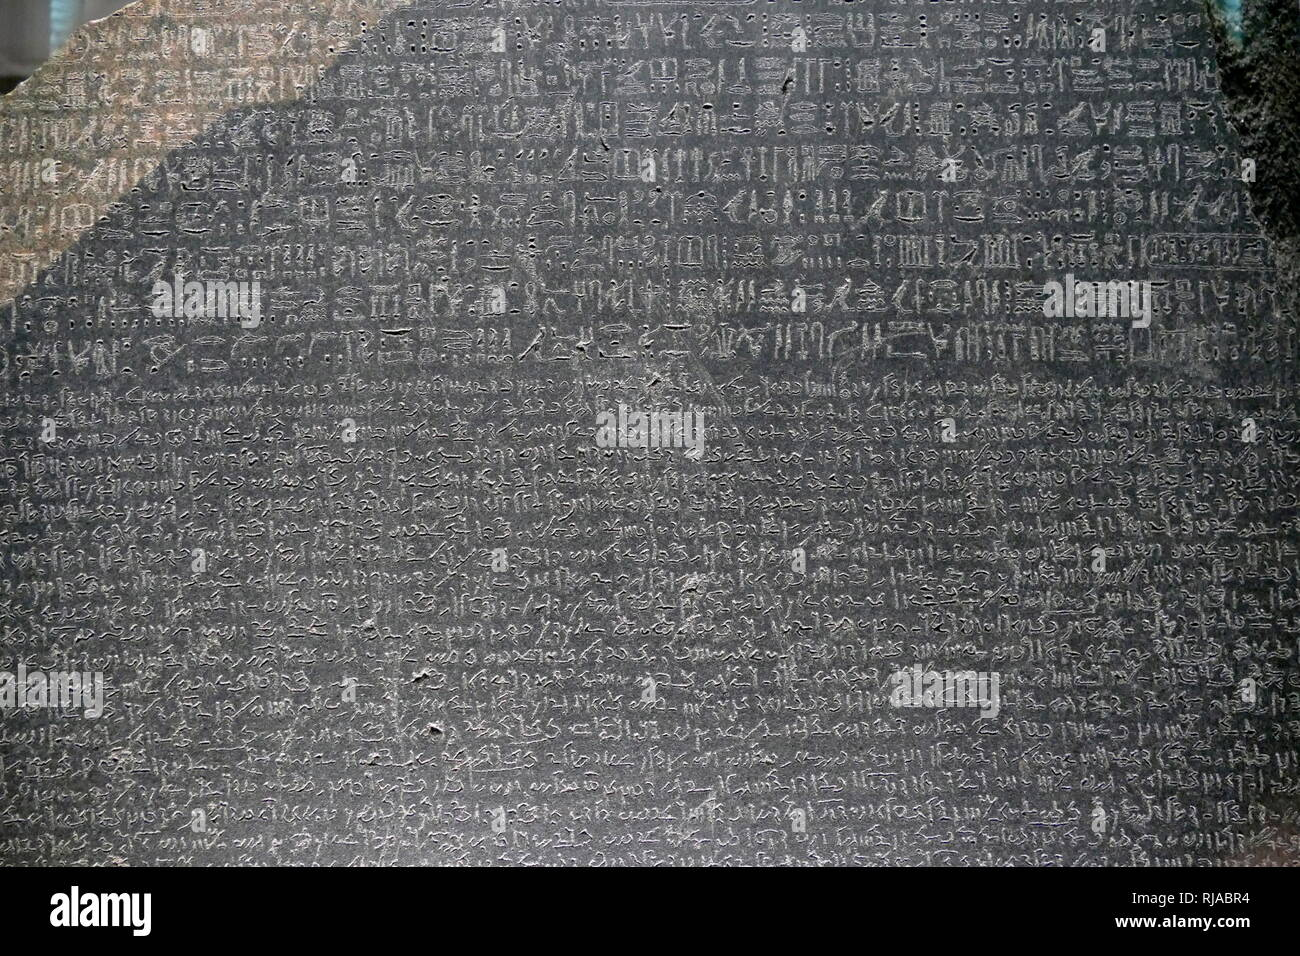 Detail from the Rosetta stone showing hieroglyphic and Demotic texts. The Rosetta Stone is a granodiorite stele, dating to 196 BC, found in 1799. It is inscribed with three versions of a decree issued at Memphis, Egypt, during the Ptolemaic dynasty on behalf of King Ptolemy V. The top and middle texts are in Ancient Egyptian using hieroglyphic script and Demotic script, respectively, while the bottom is in Ancient Greek. As the decree has only minor differences between the three versions, the Rosetta Stone proved to be the key to deciphering Egyptian hieroglyphs. Study of the decree was alread - Stock Image